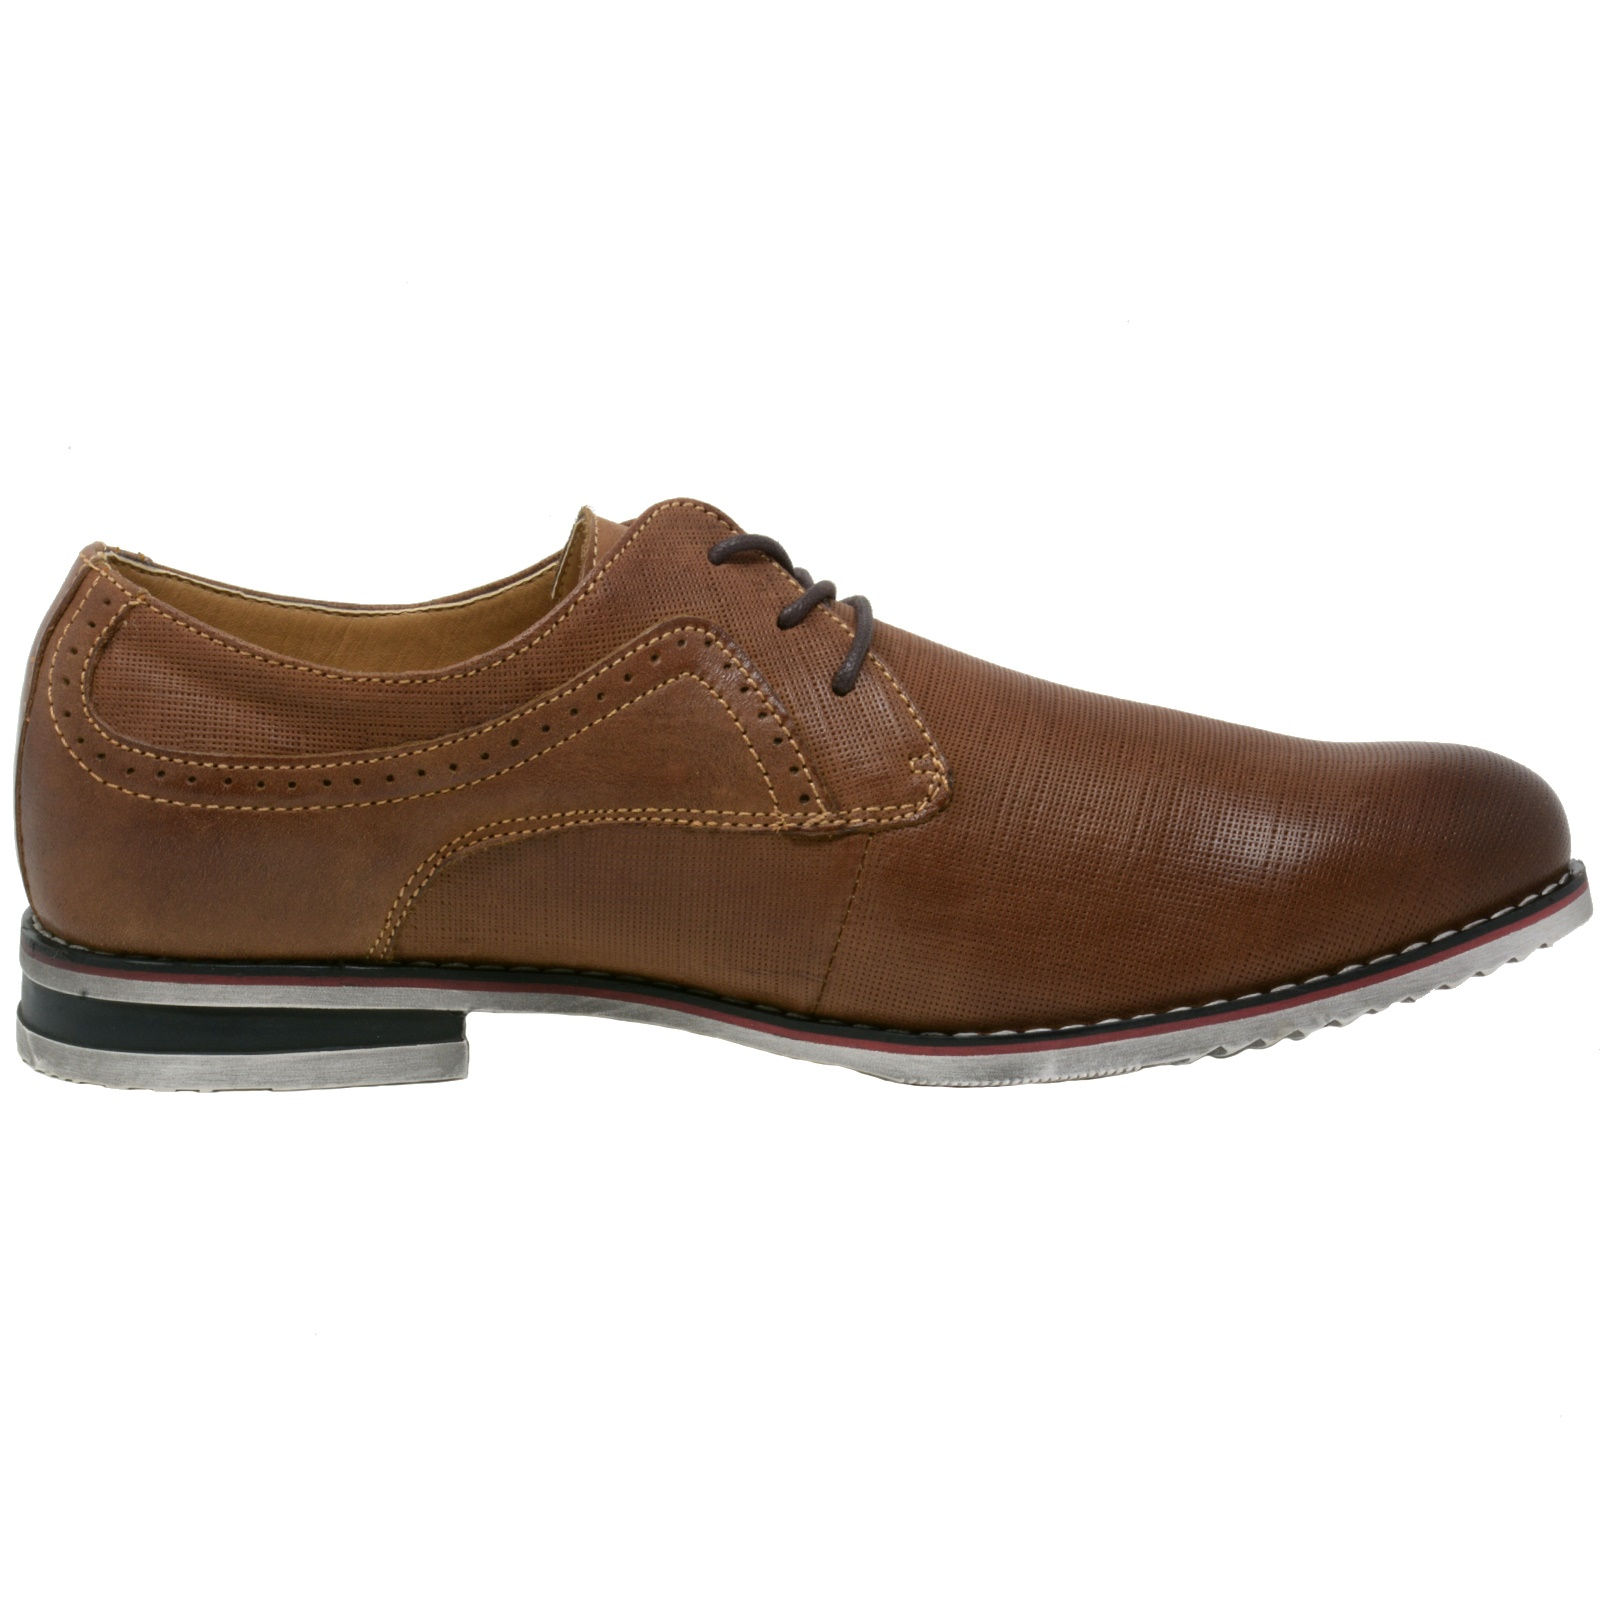 Double-Diamond-by-Alpine-Swiss-Mens-Saffiano-Leather-Lace-Up-Oxford-Dress-Shoes thumbnail 21